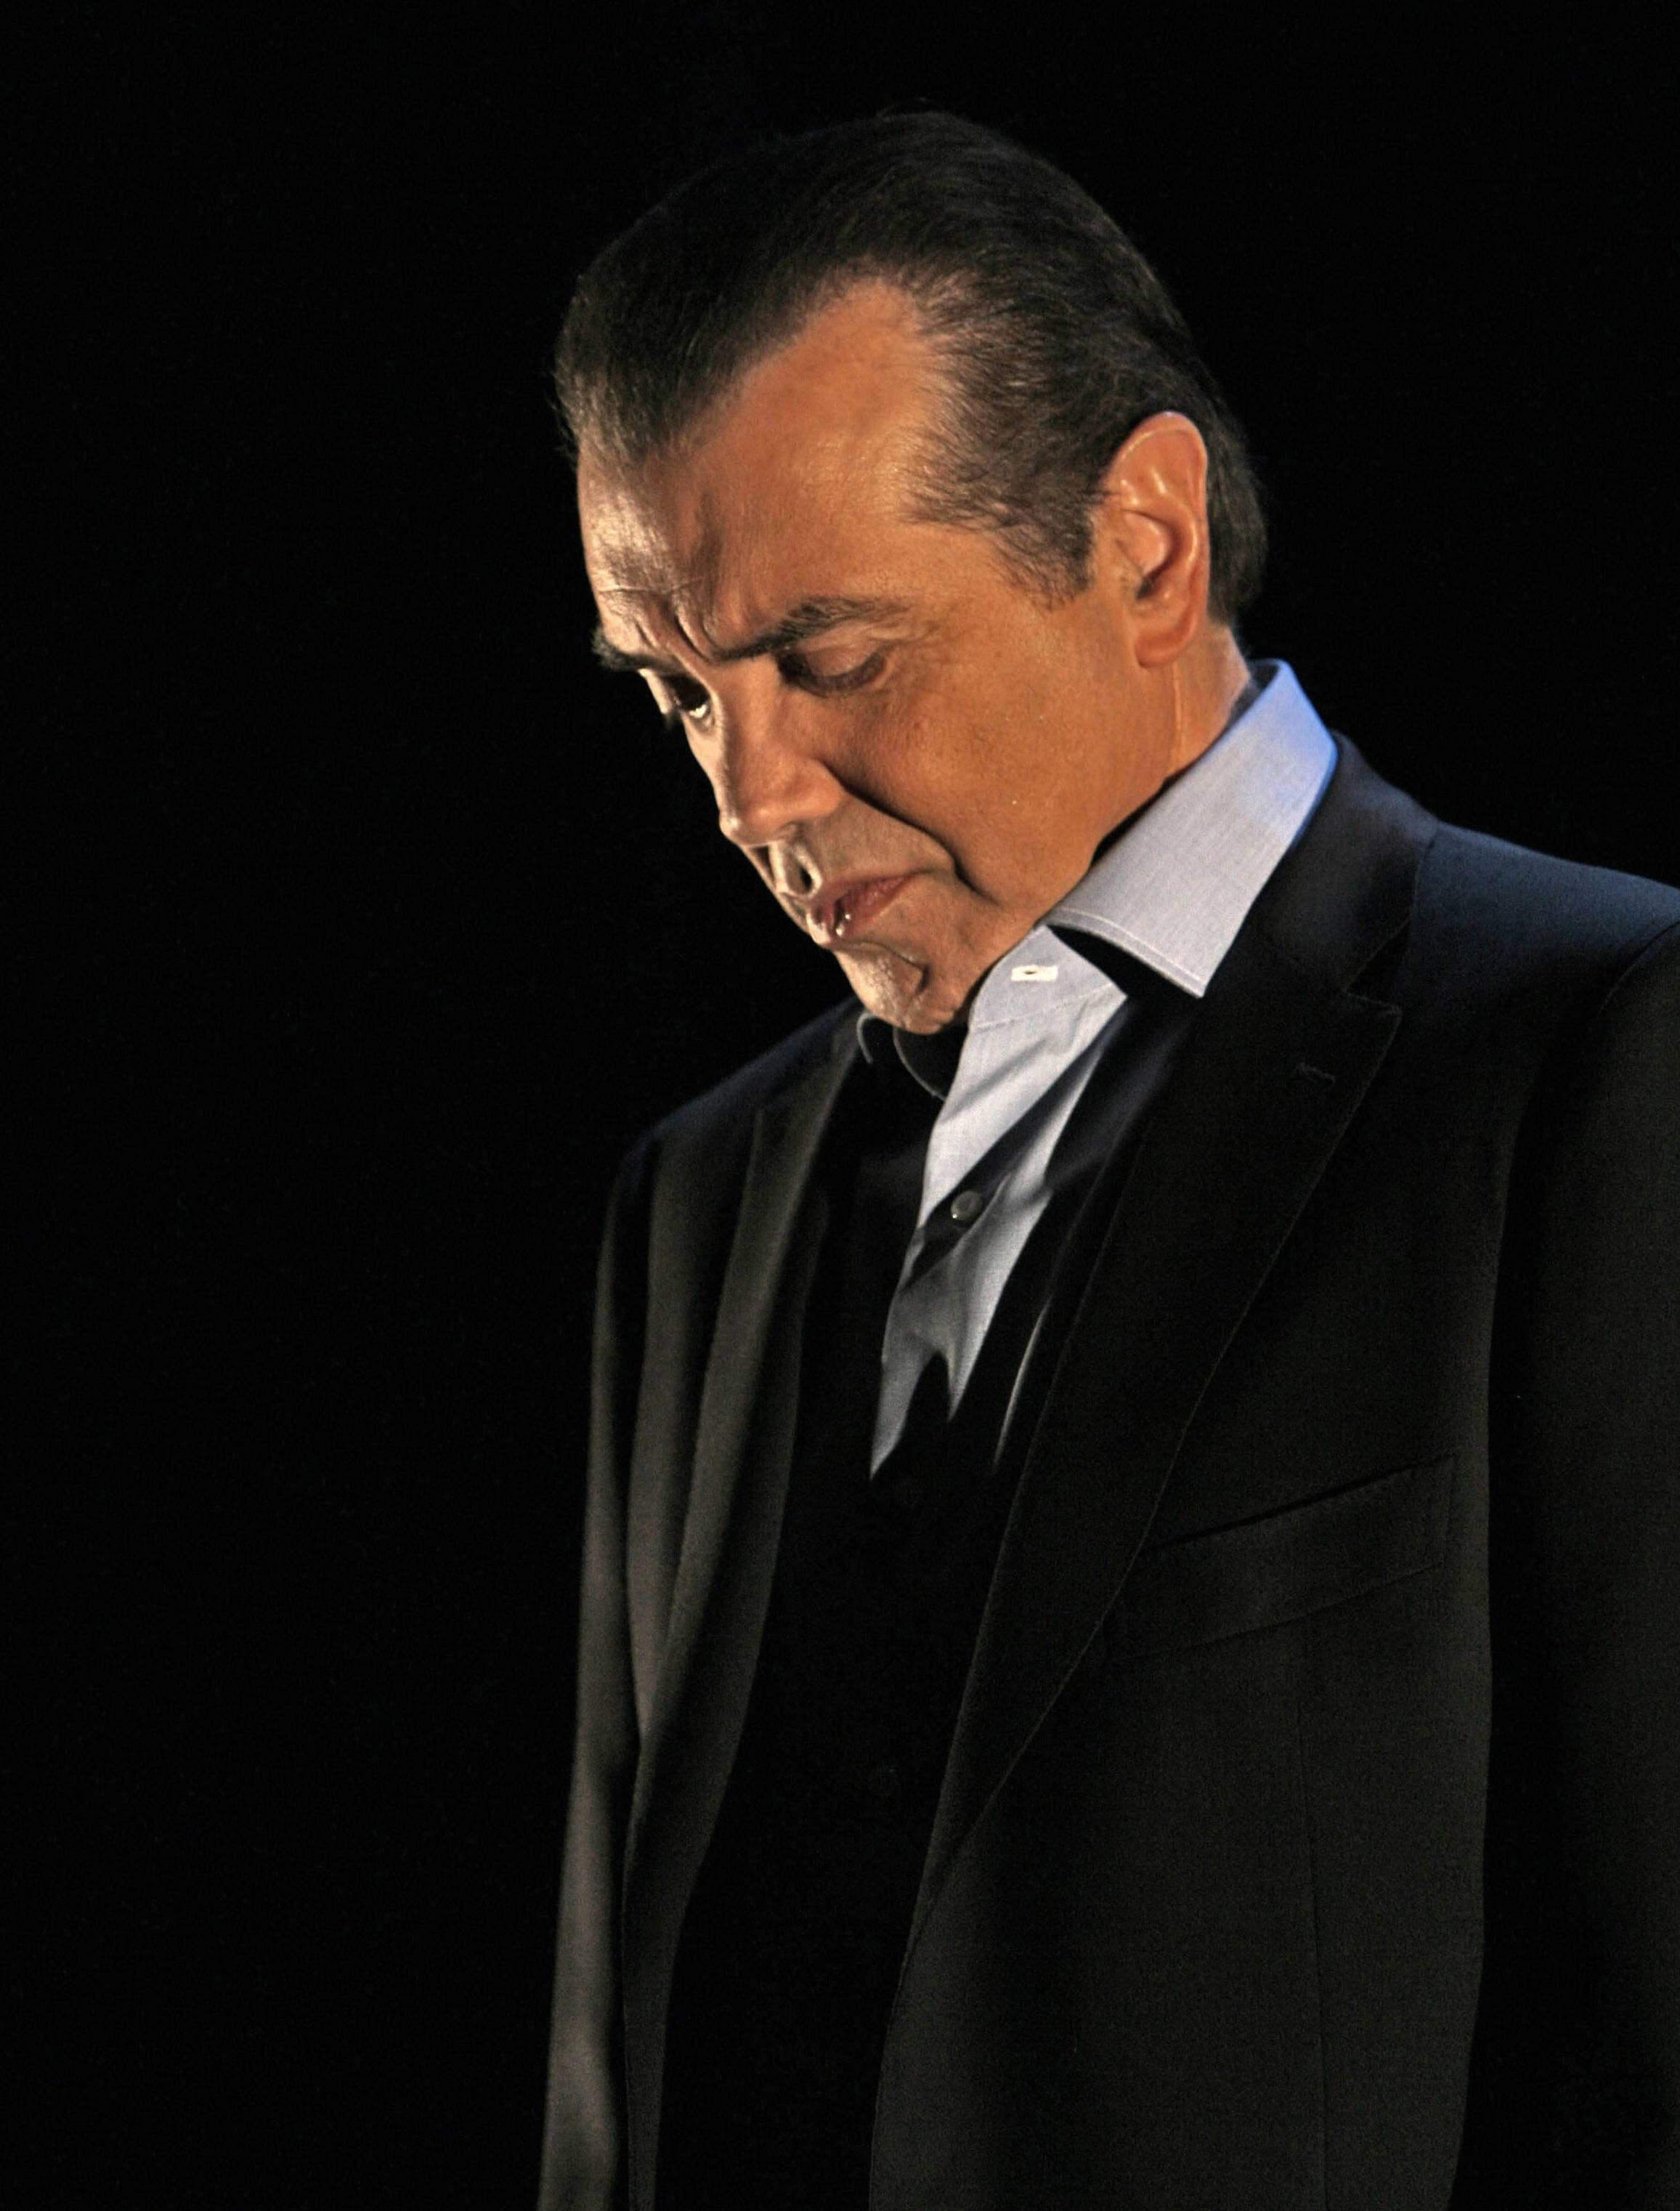 Oscar-nominated actor Chazz Palminteri brings his own stage play